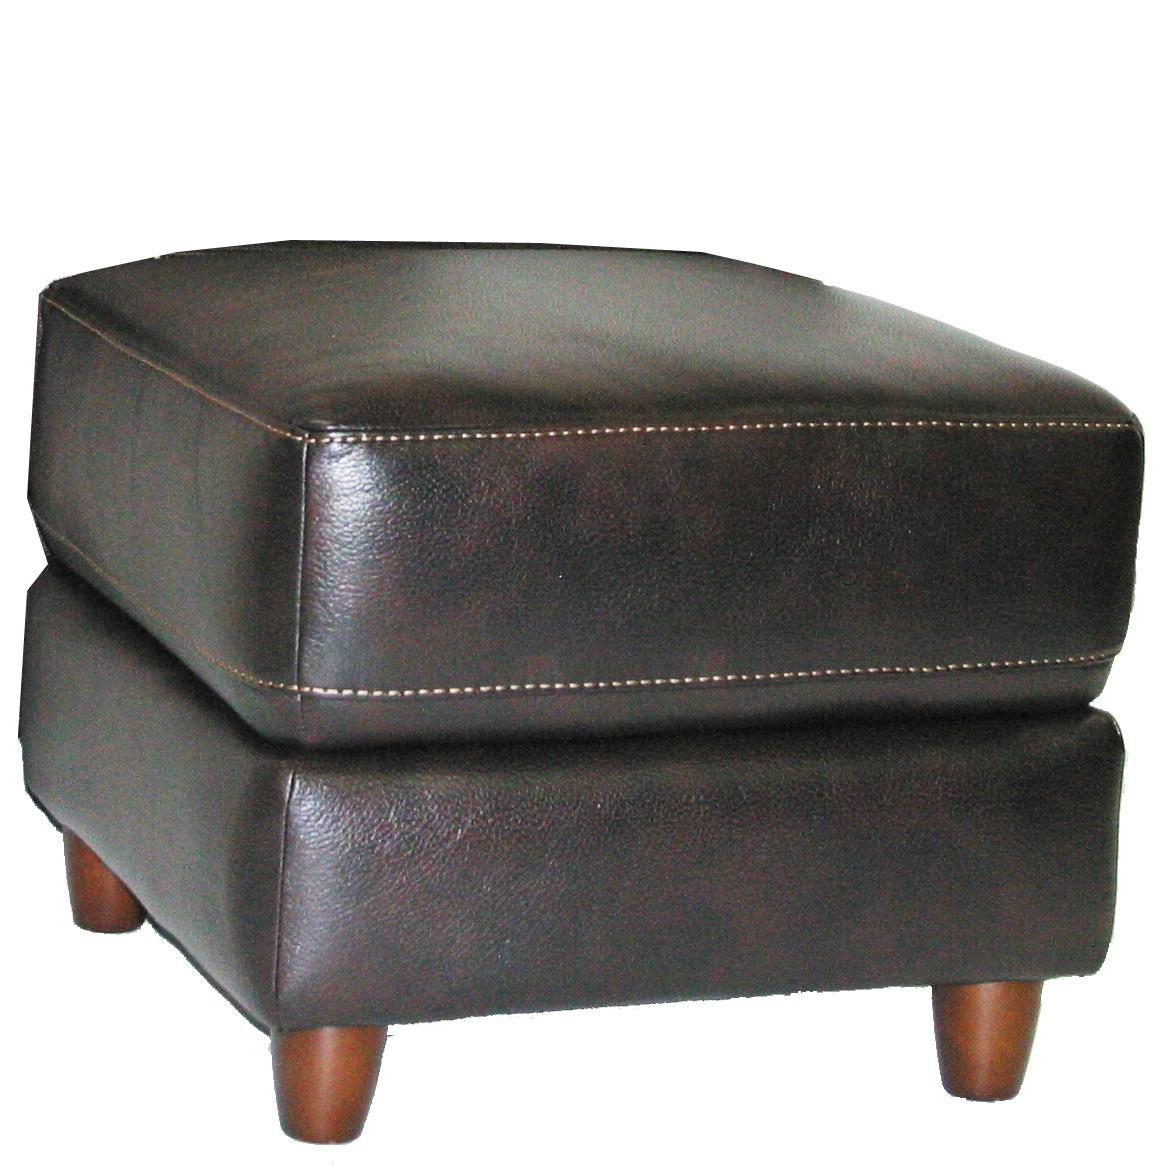 3356 Ottoman by Violino at Furniture Superstore - Rochester, MN